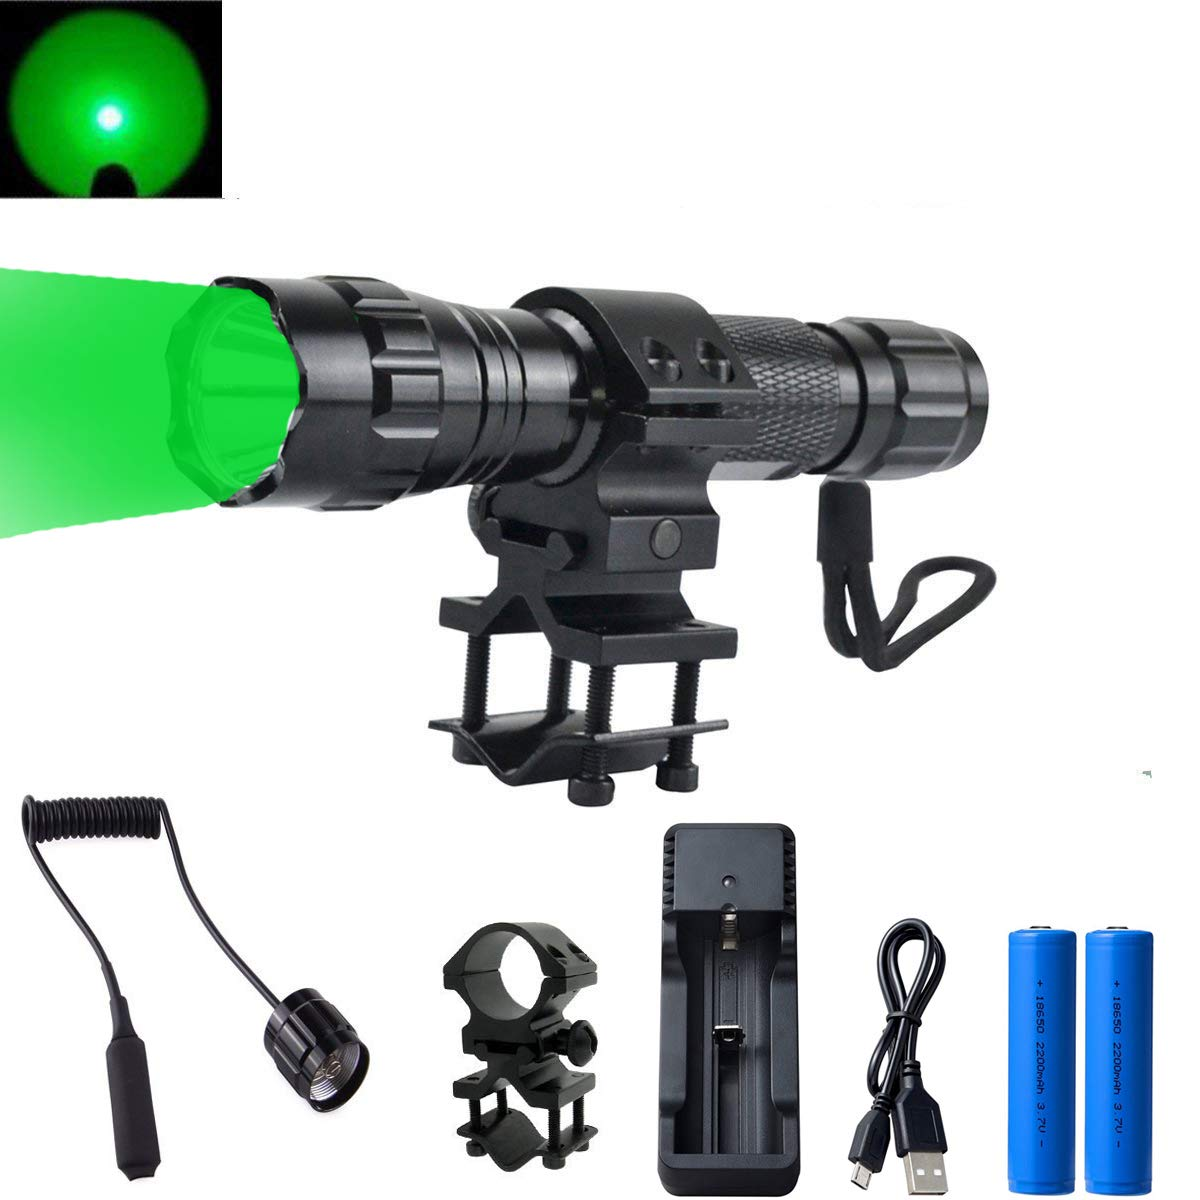 GRACETOP Green Light LED Coyote Hog Pig Varmint Predator Hunting Light Flashlight with Remote Pressure Switch by GRACETOP